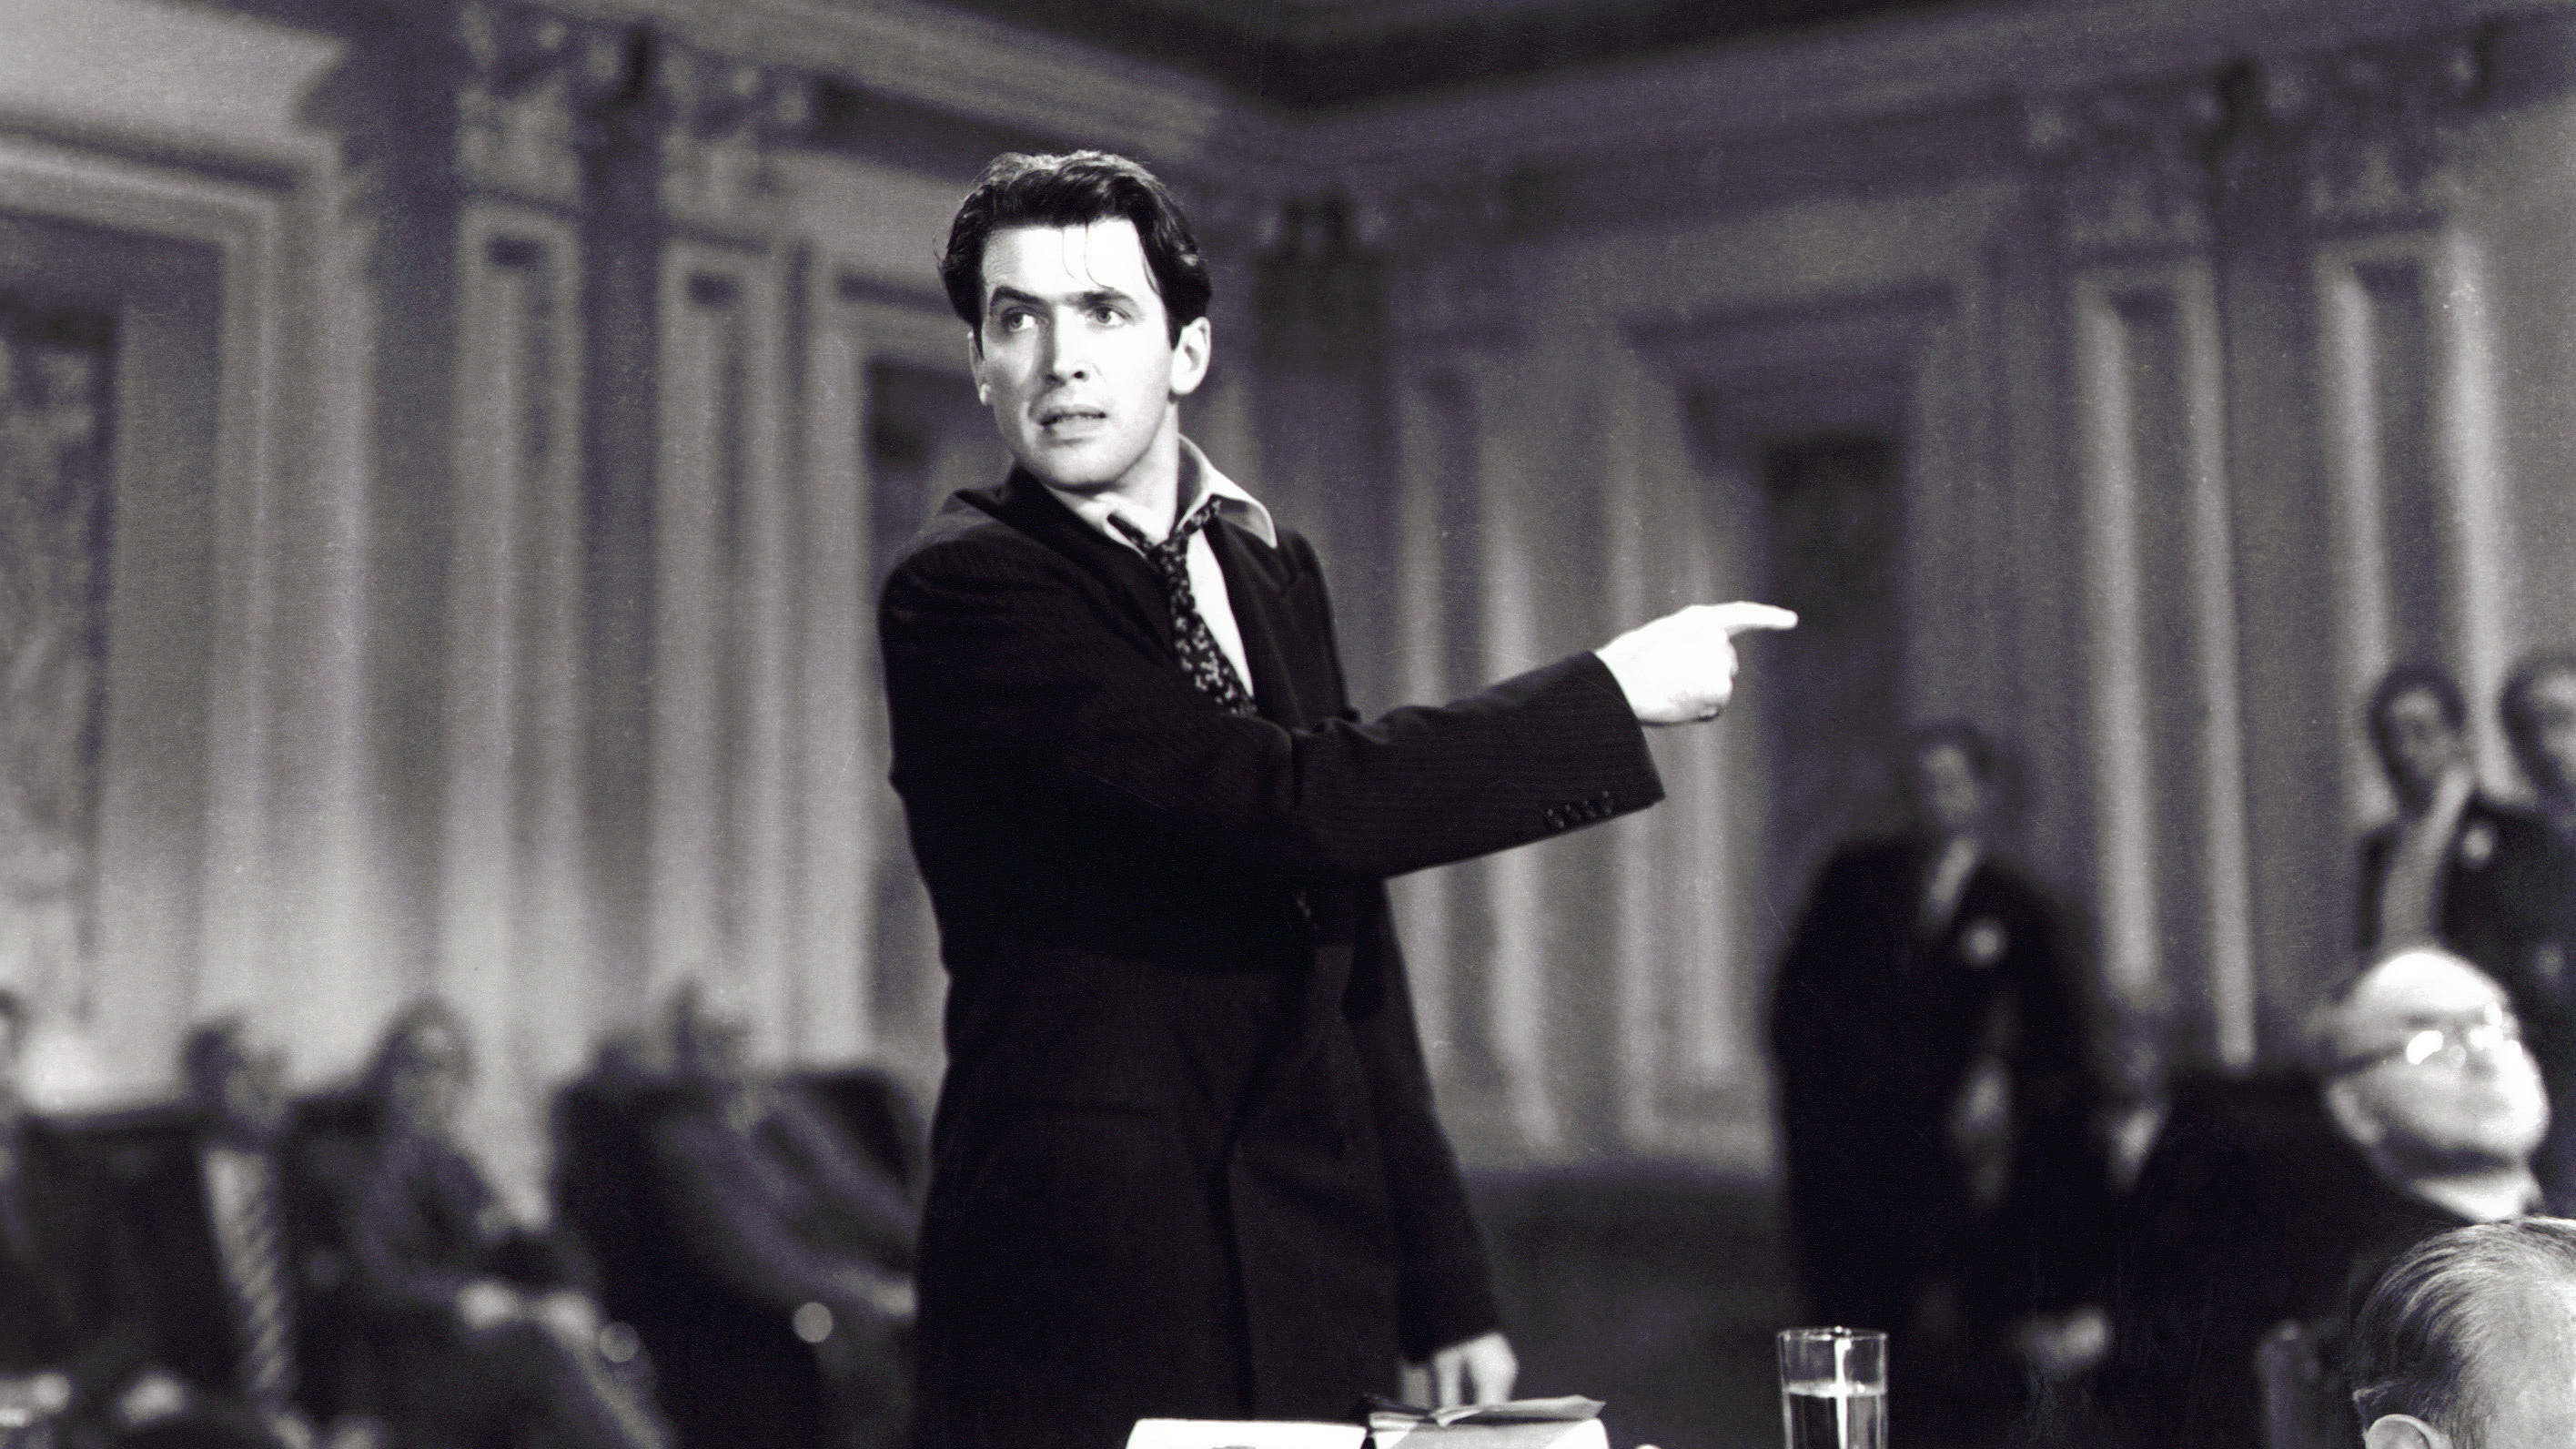 Jimmy Stewart's 1939 performance in Mr. Smith Goes To Washington helped form the popular perception of a Senate filibuster, with a lawmaker talking for hours on end. It hasn't been like that for decades, but President Biden supports returning to that style.